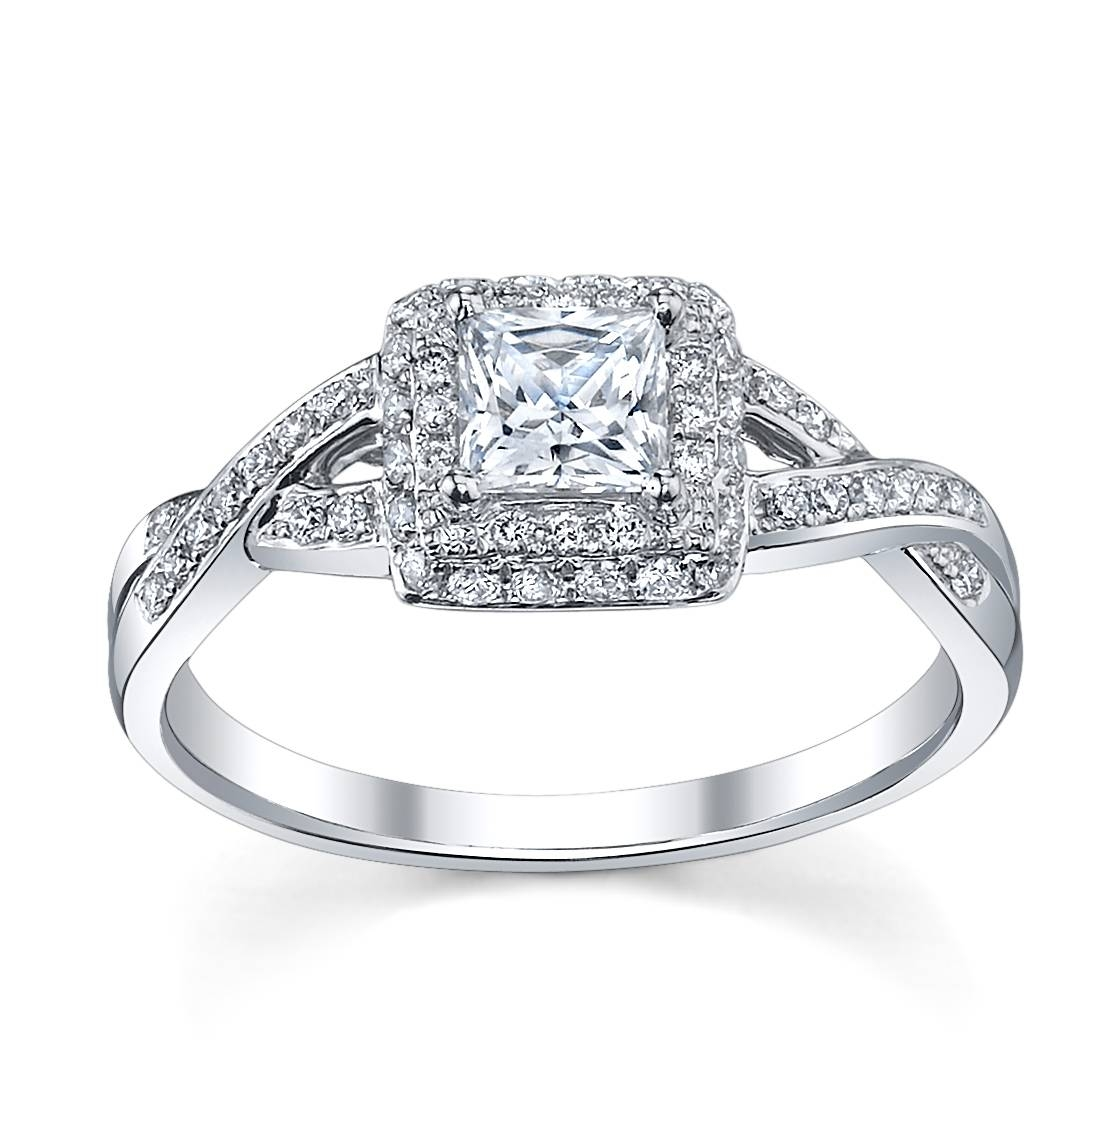 Engagement Rings : Vintage Princess Cut Engagement Awesome Square Pertaining To Square Wedding Rings For Women (View 5 of 15)